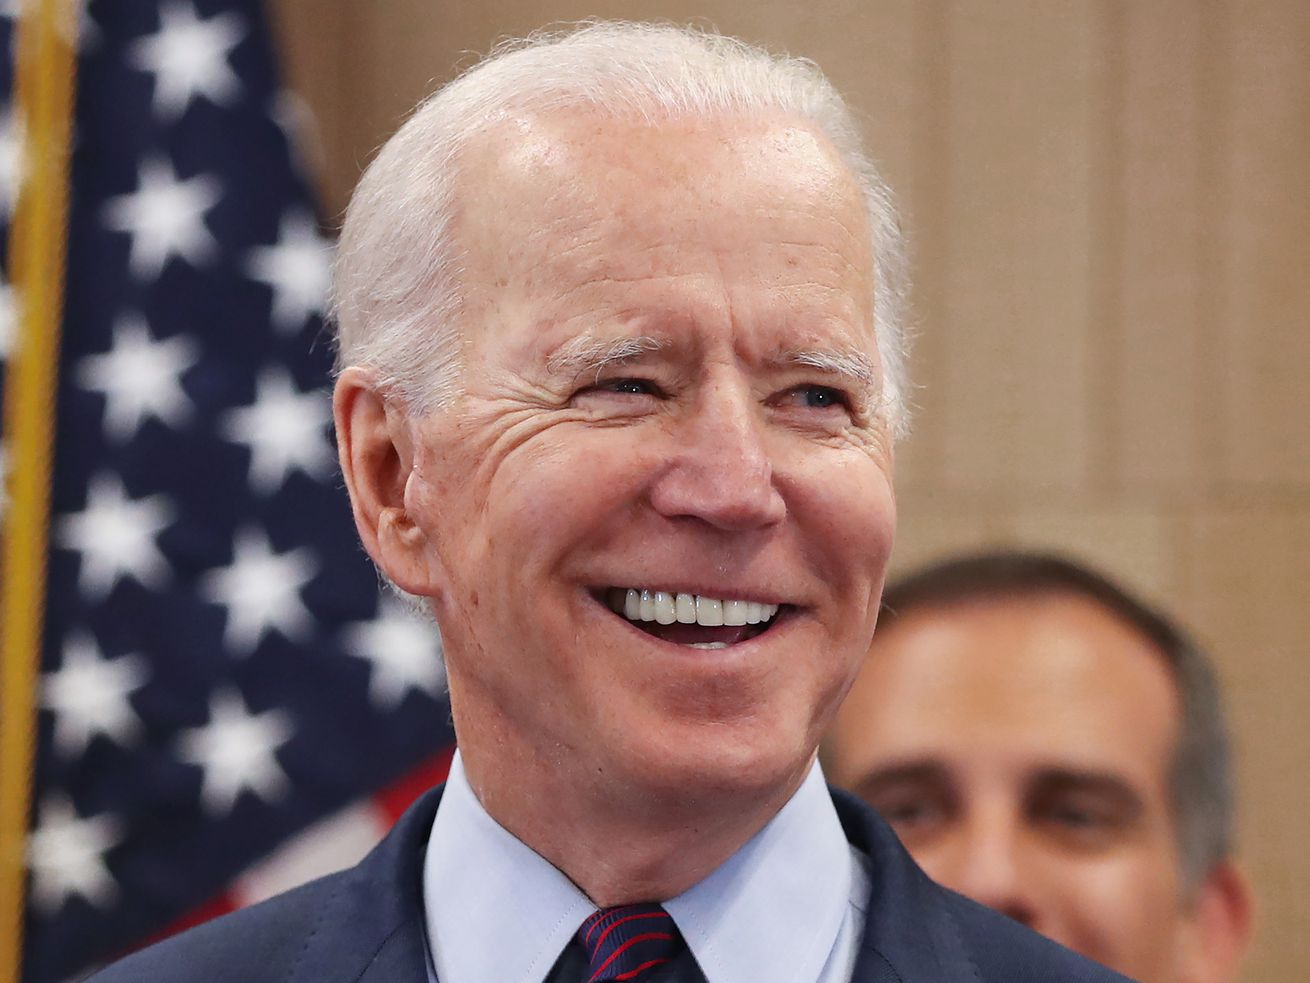 Endorsement: Joe Biden for designated driver in a country binging on discord